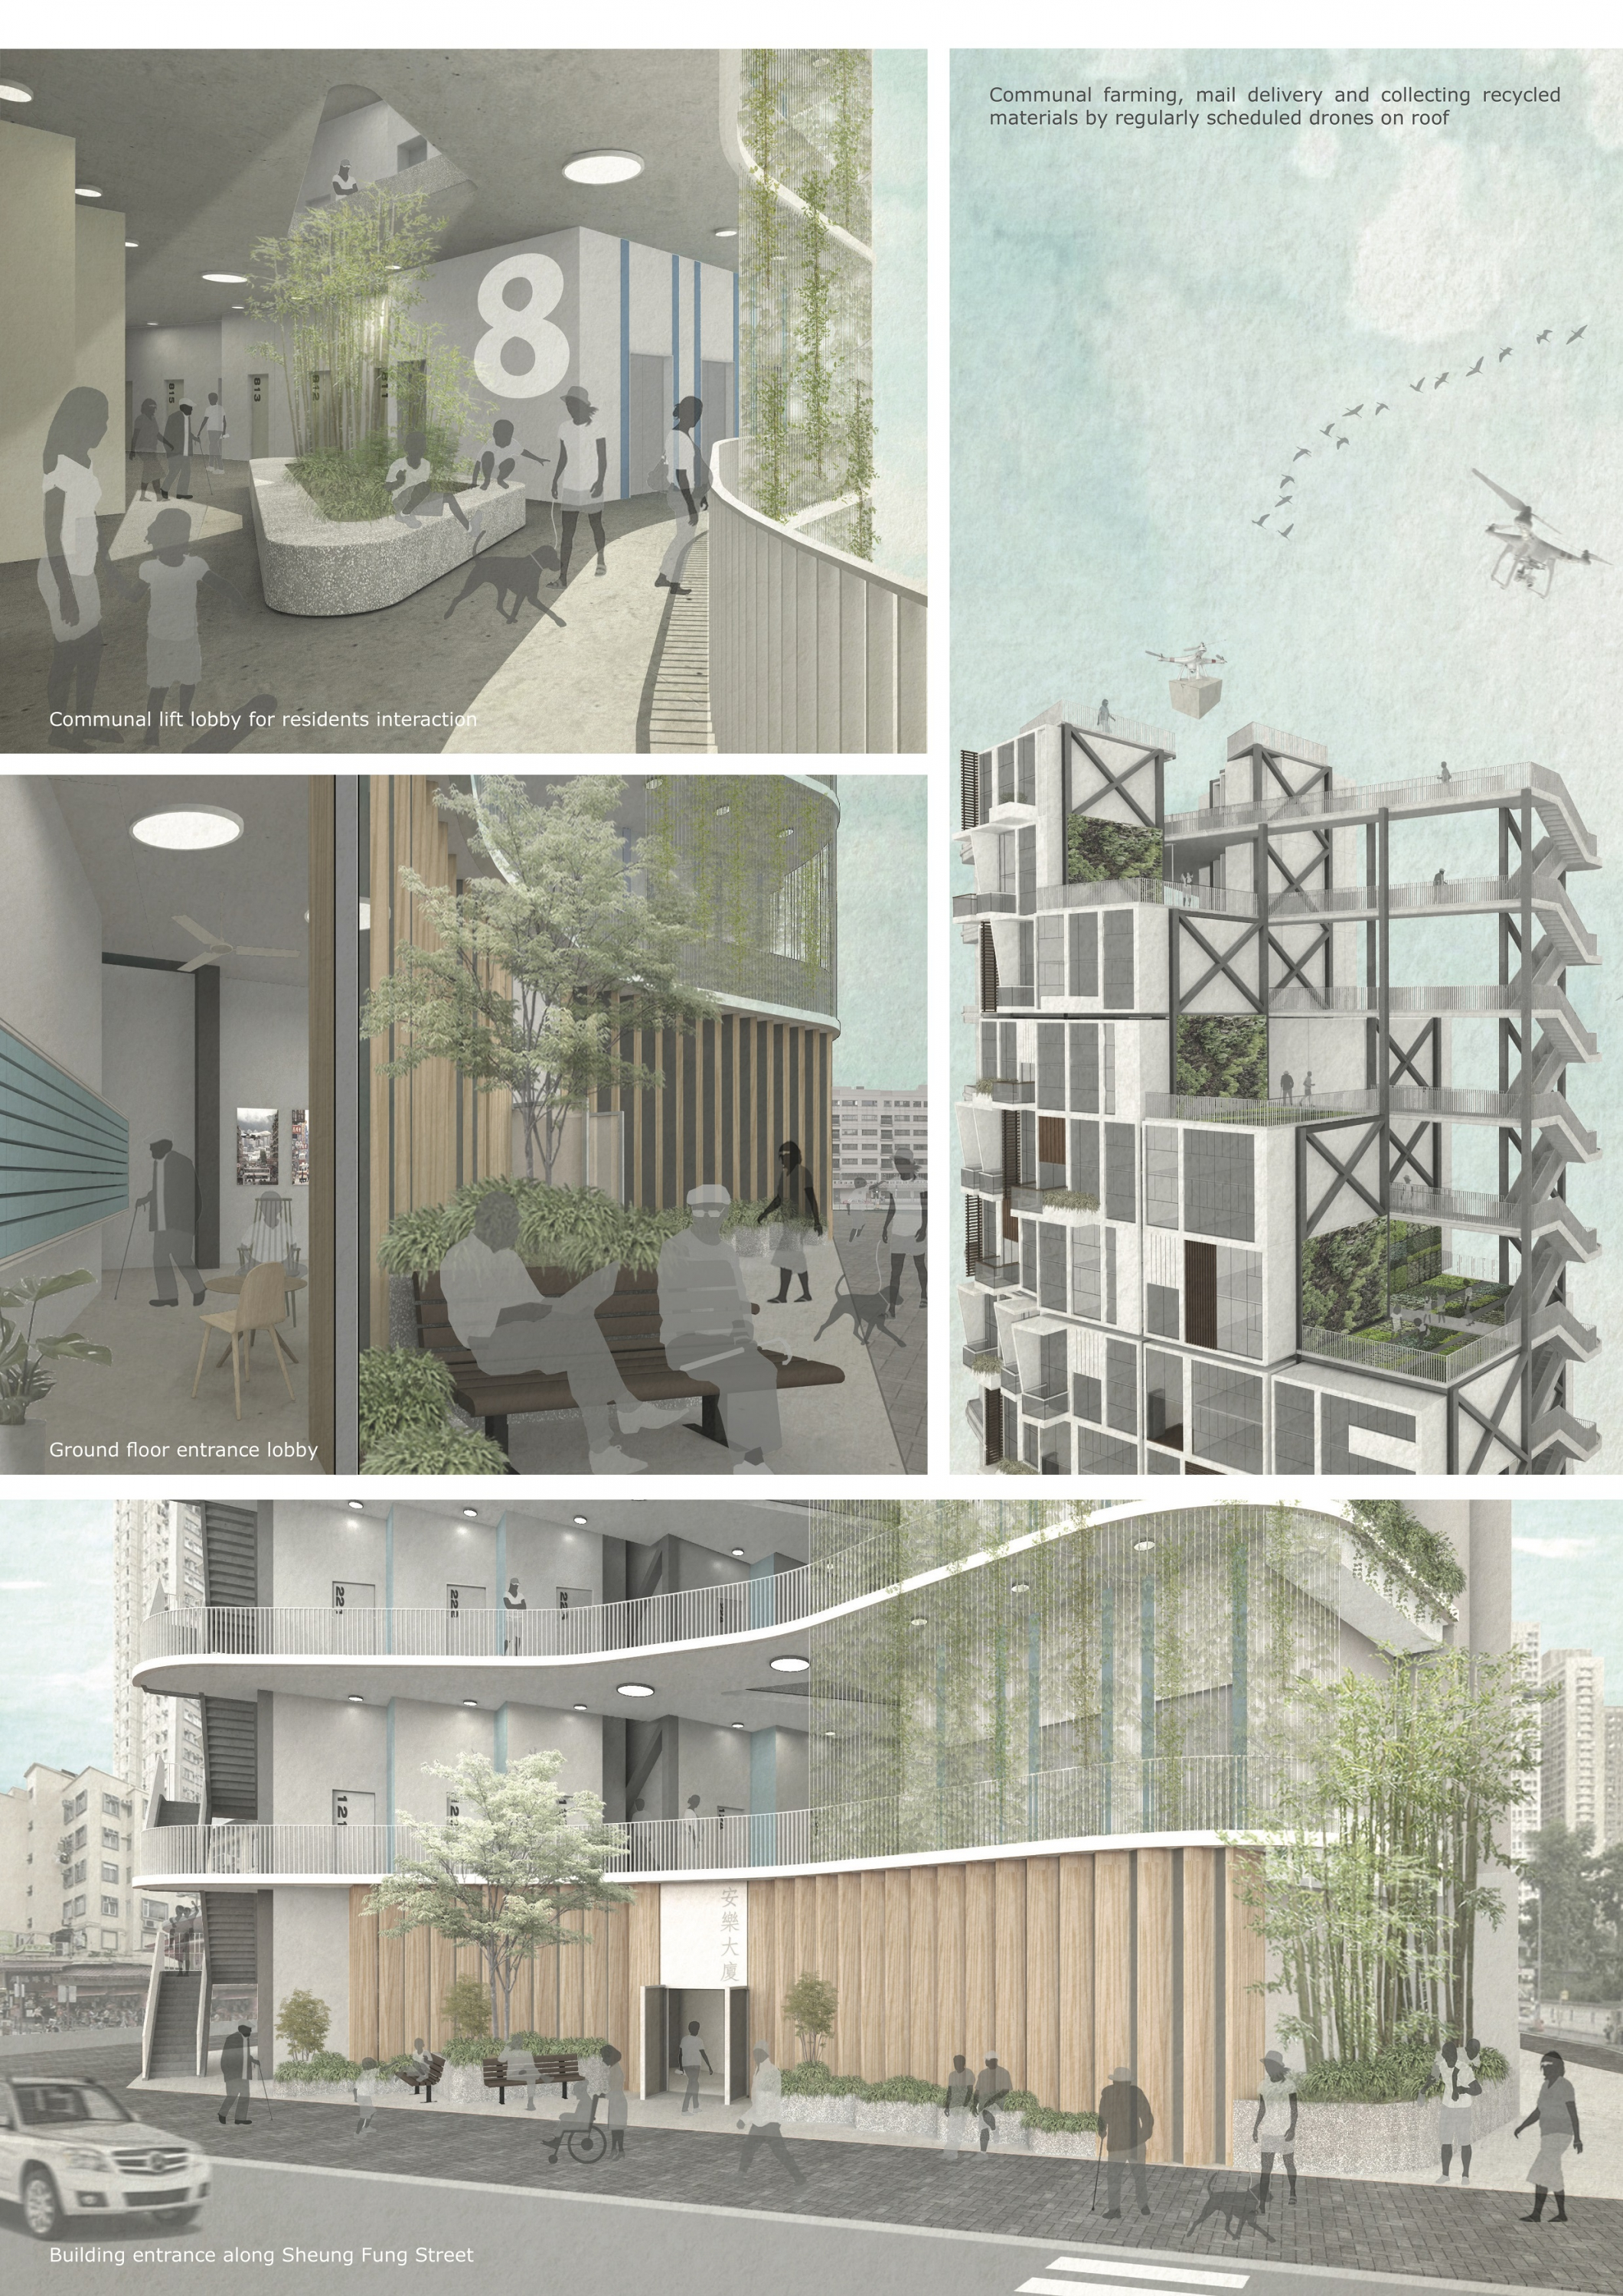 """An Assemble of Tailor-made Homes: First Affordable Housing Pilot Scheme in Tsz Wan Shan"" proposal by Vince Yiu."